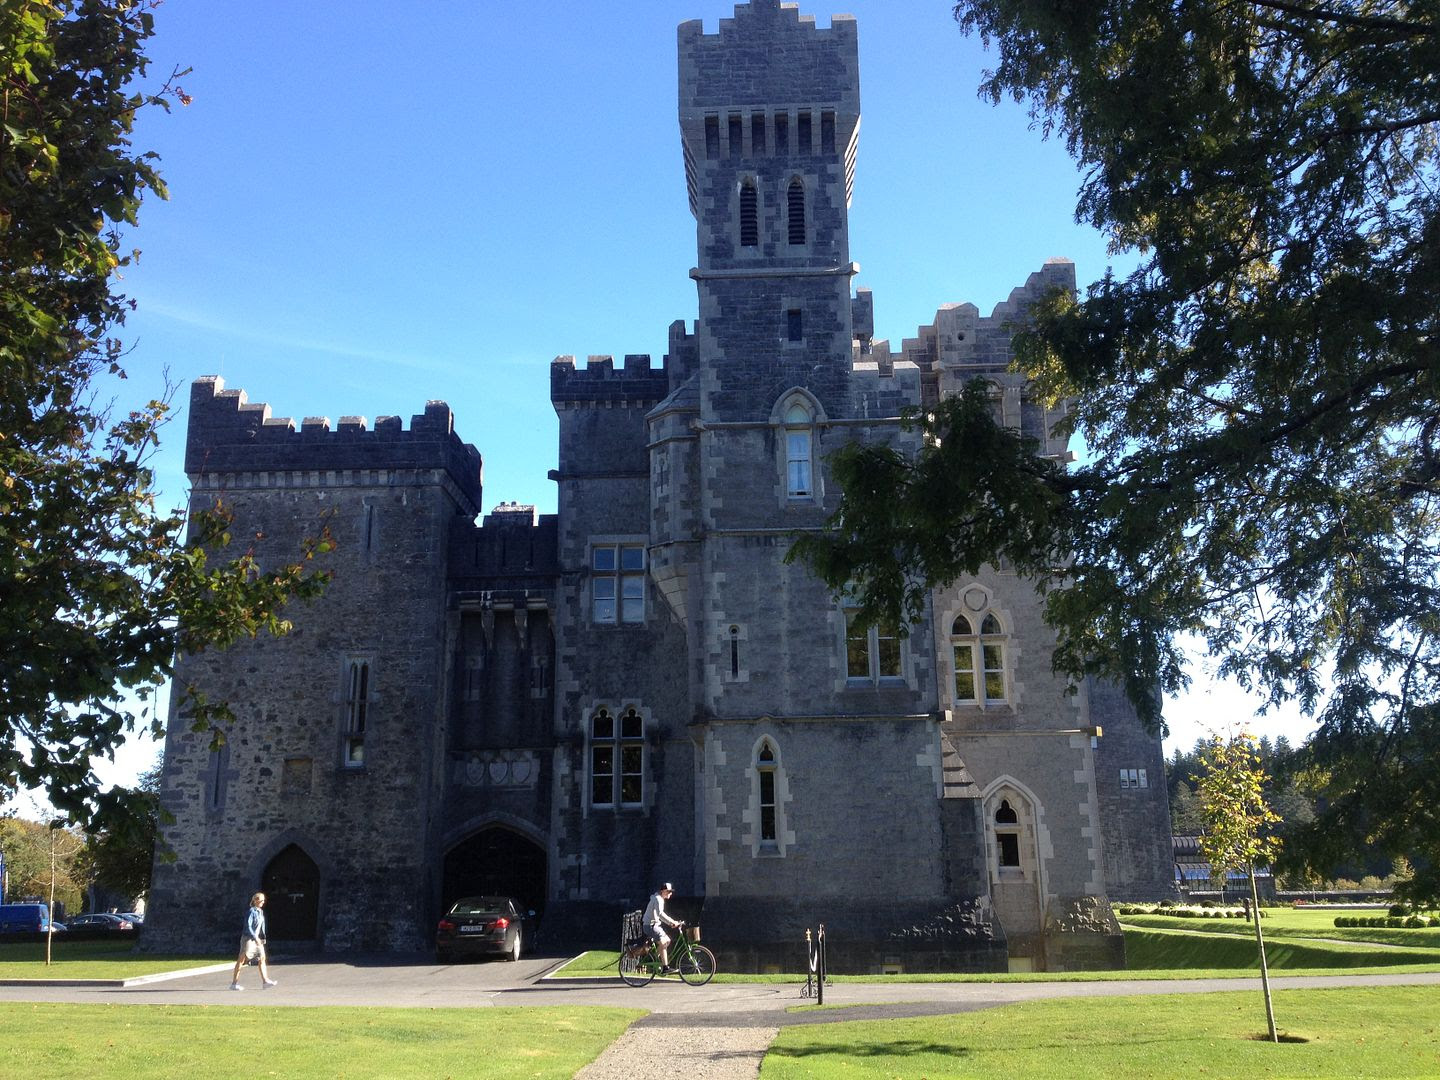 Ashford Castle, Ireland photo 2015-10-13 13.03.06_zpsvcxndt0d.jpg